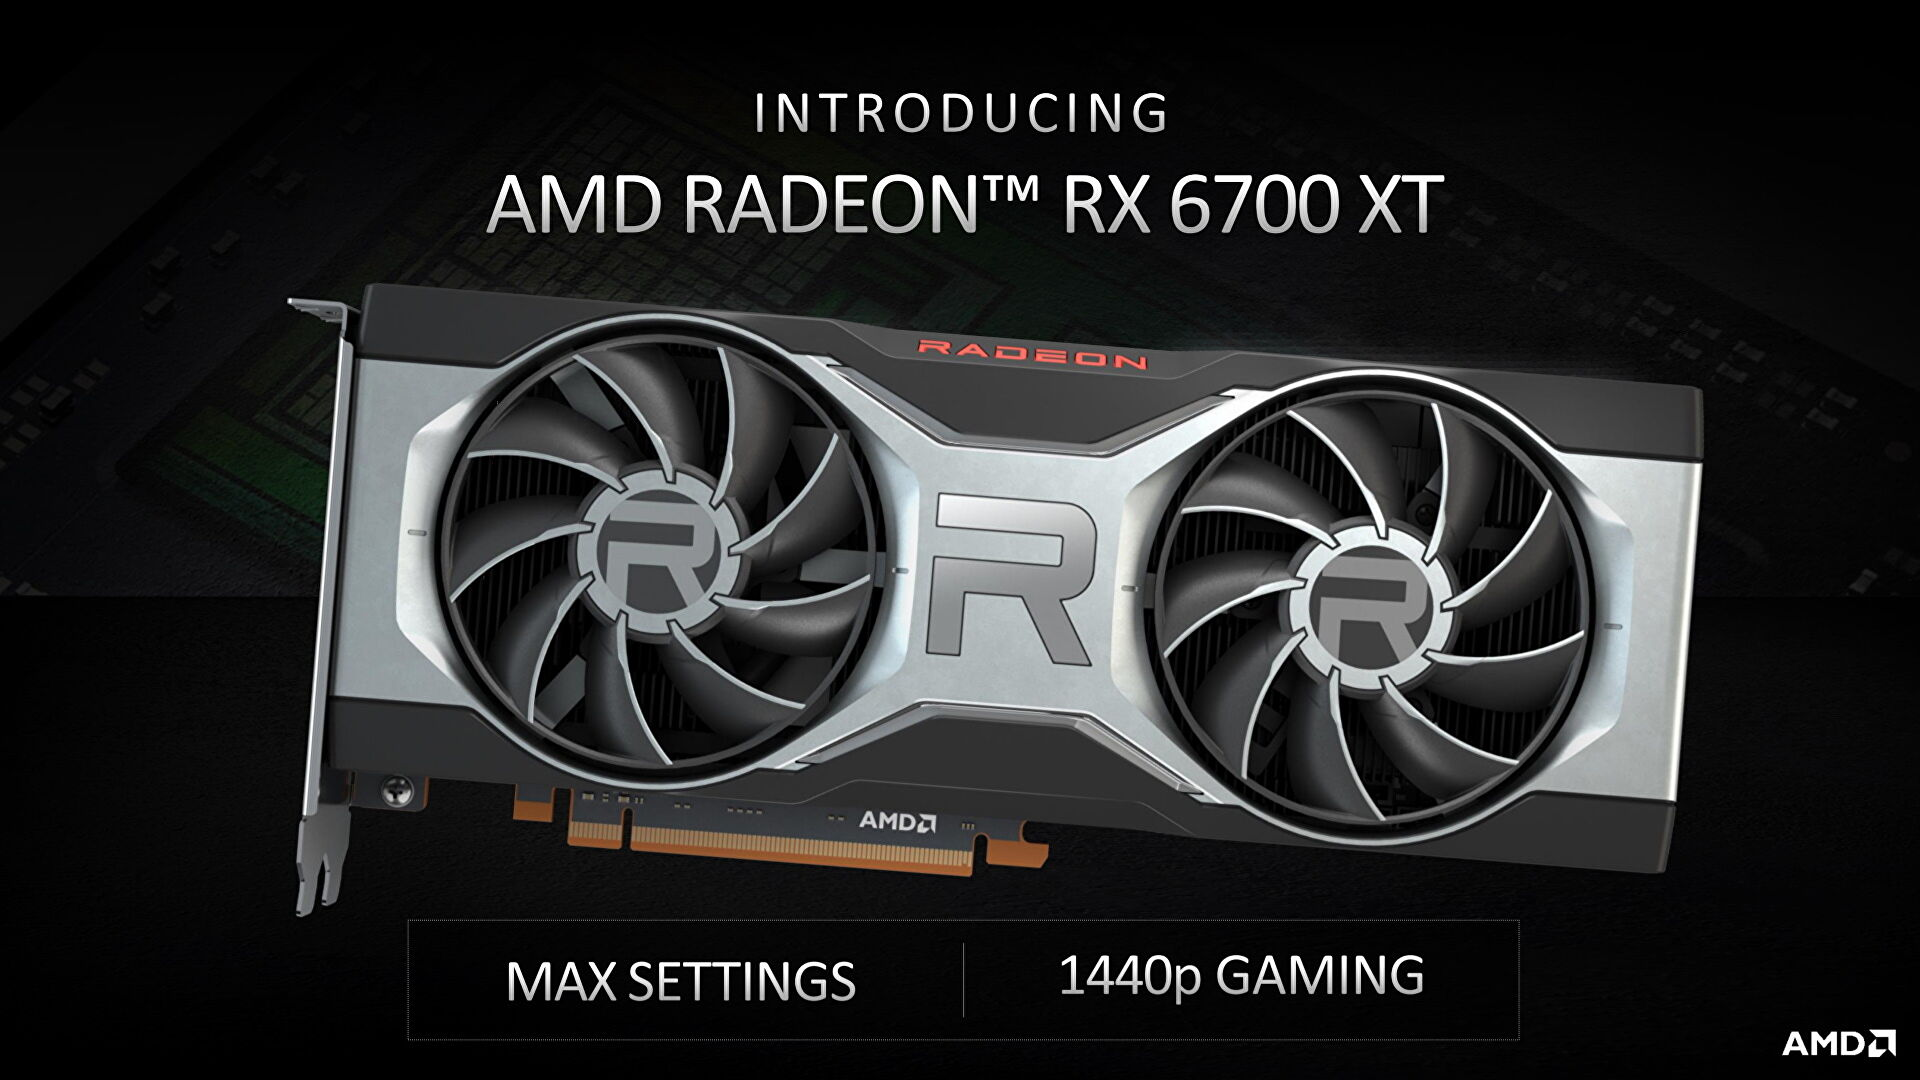 Everything you need to know about AMD's RX 6700 XT GPU